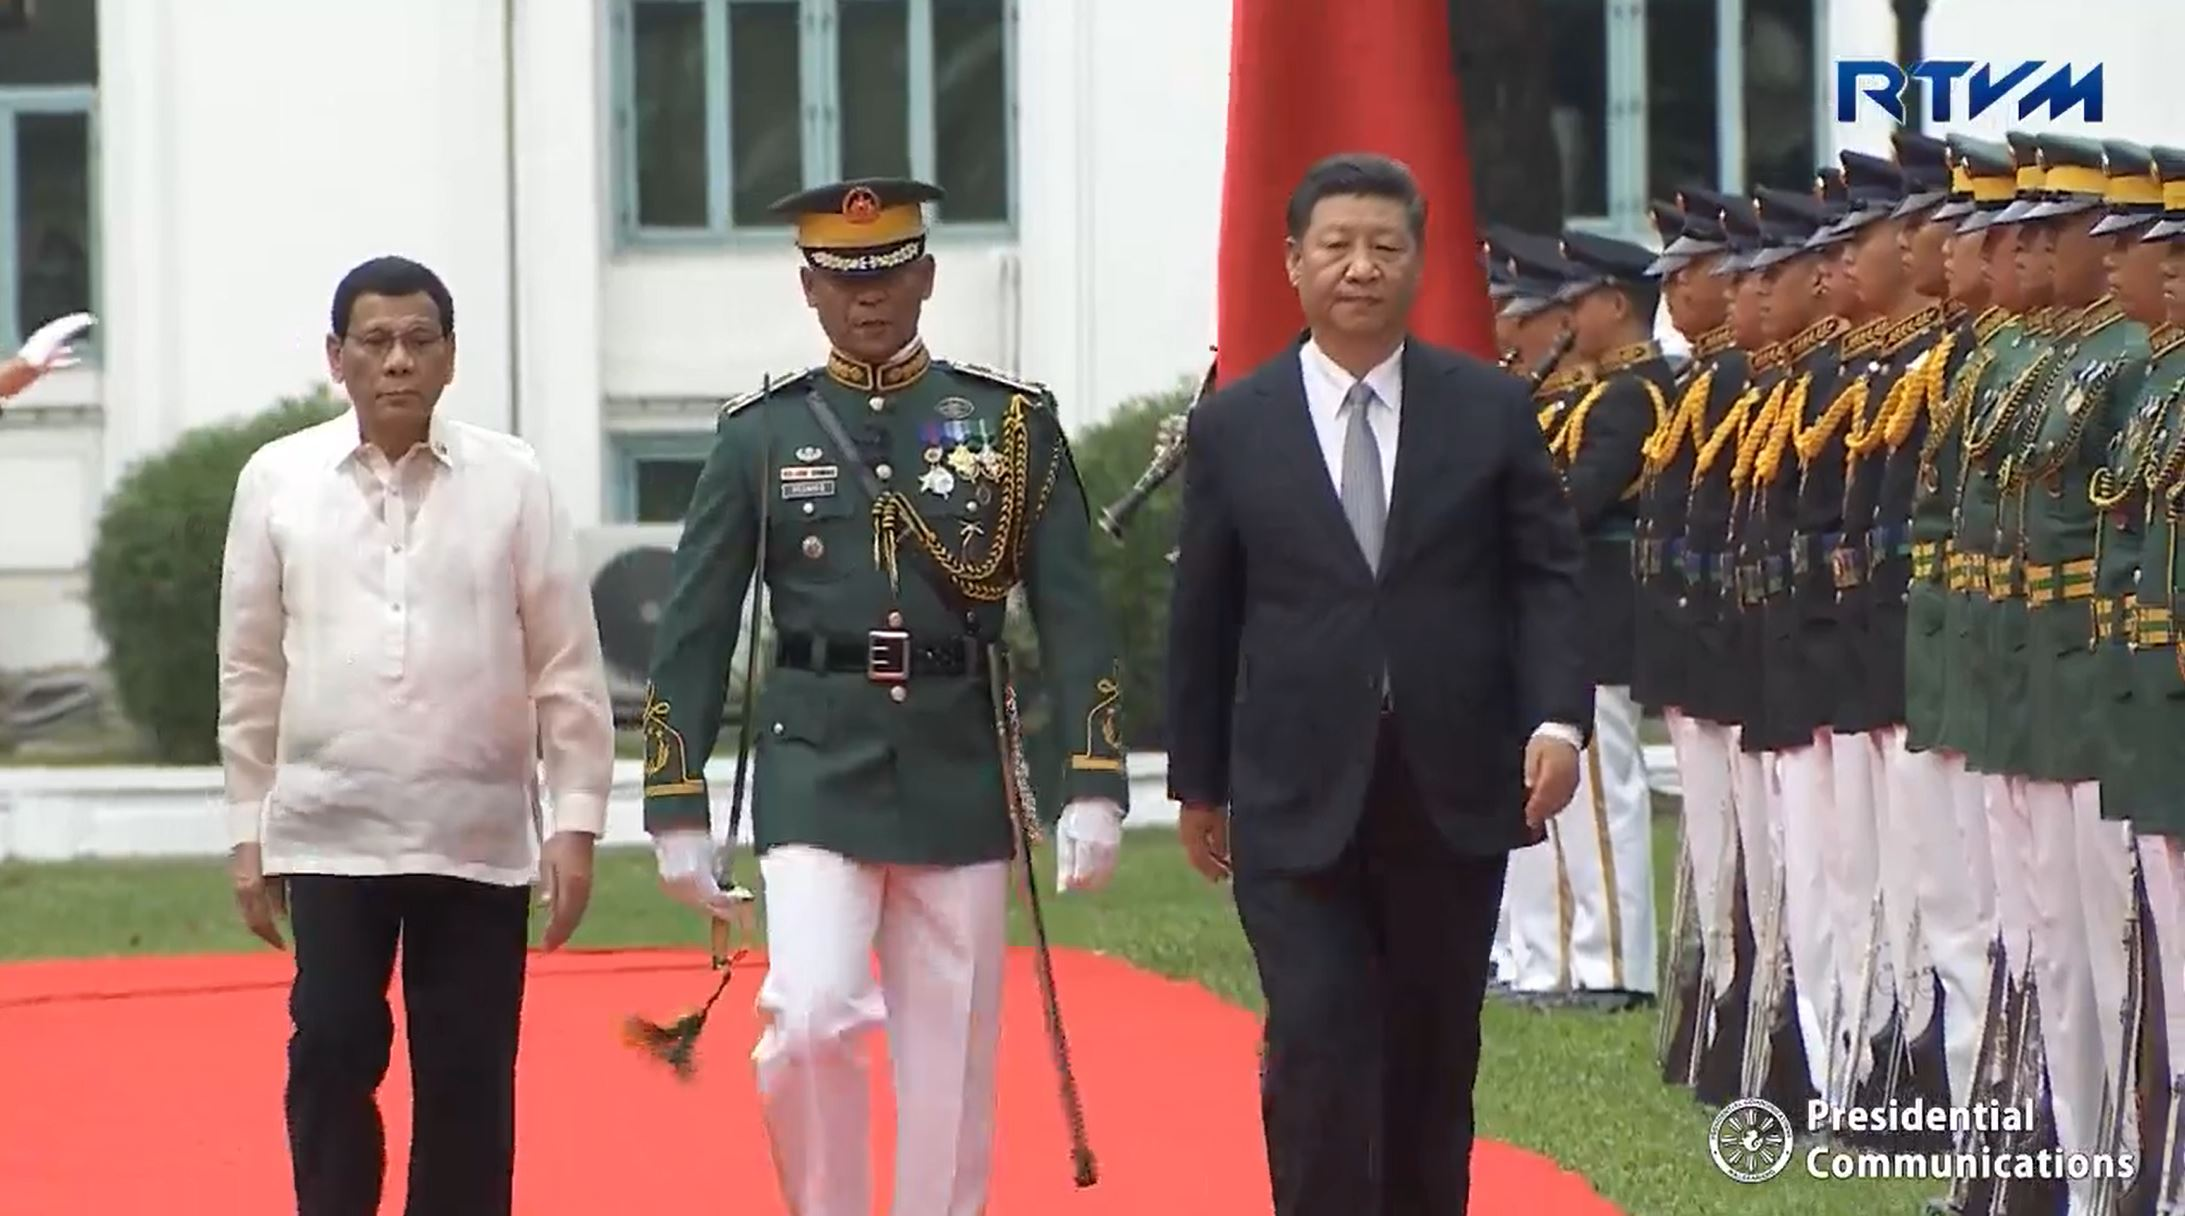 In photos:  President Duterte receives Chinese President Xi in welcome ceremonies at Palace grounds